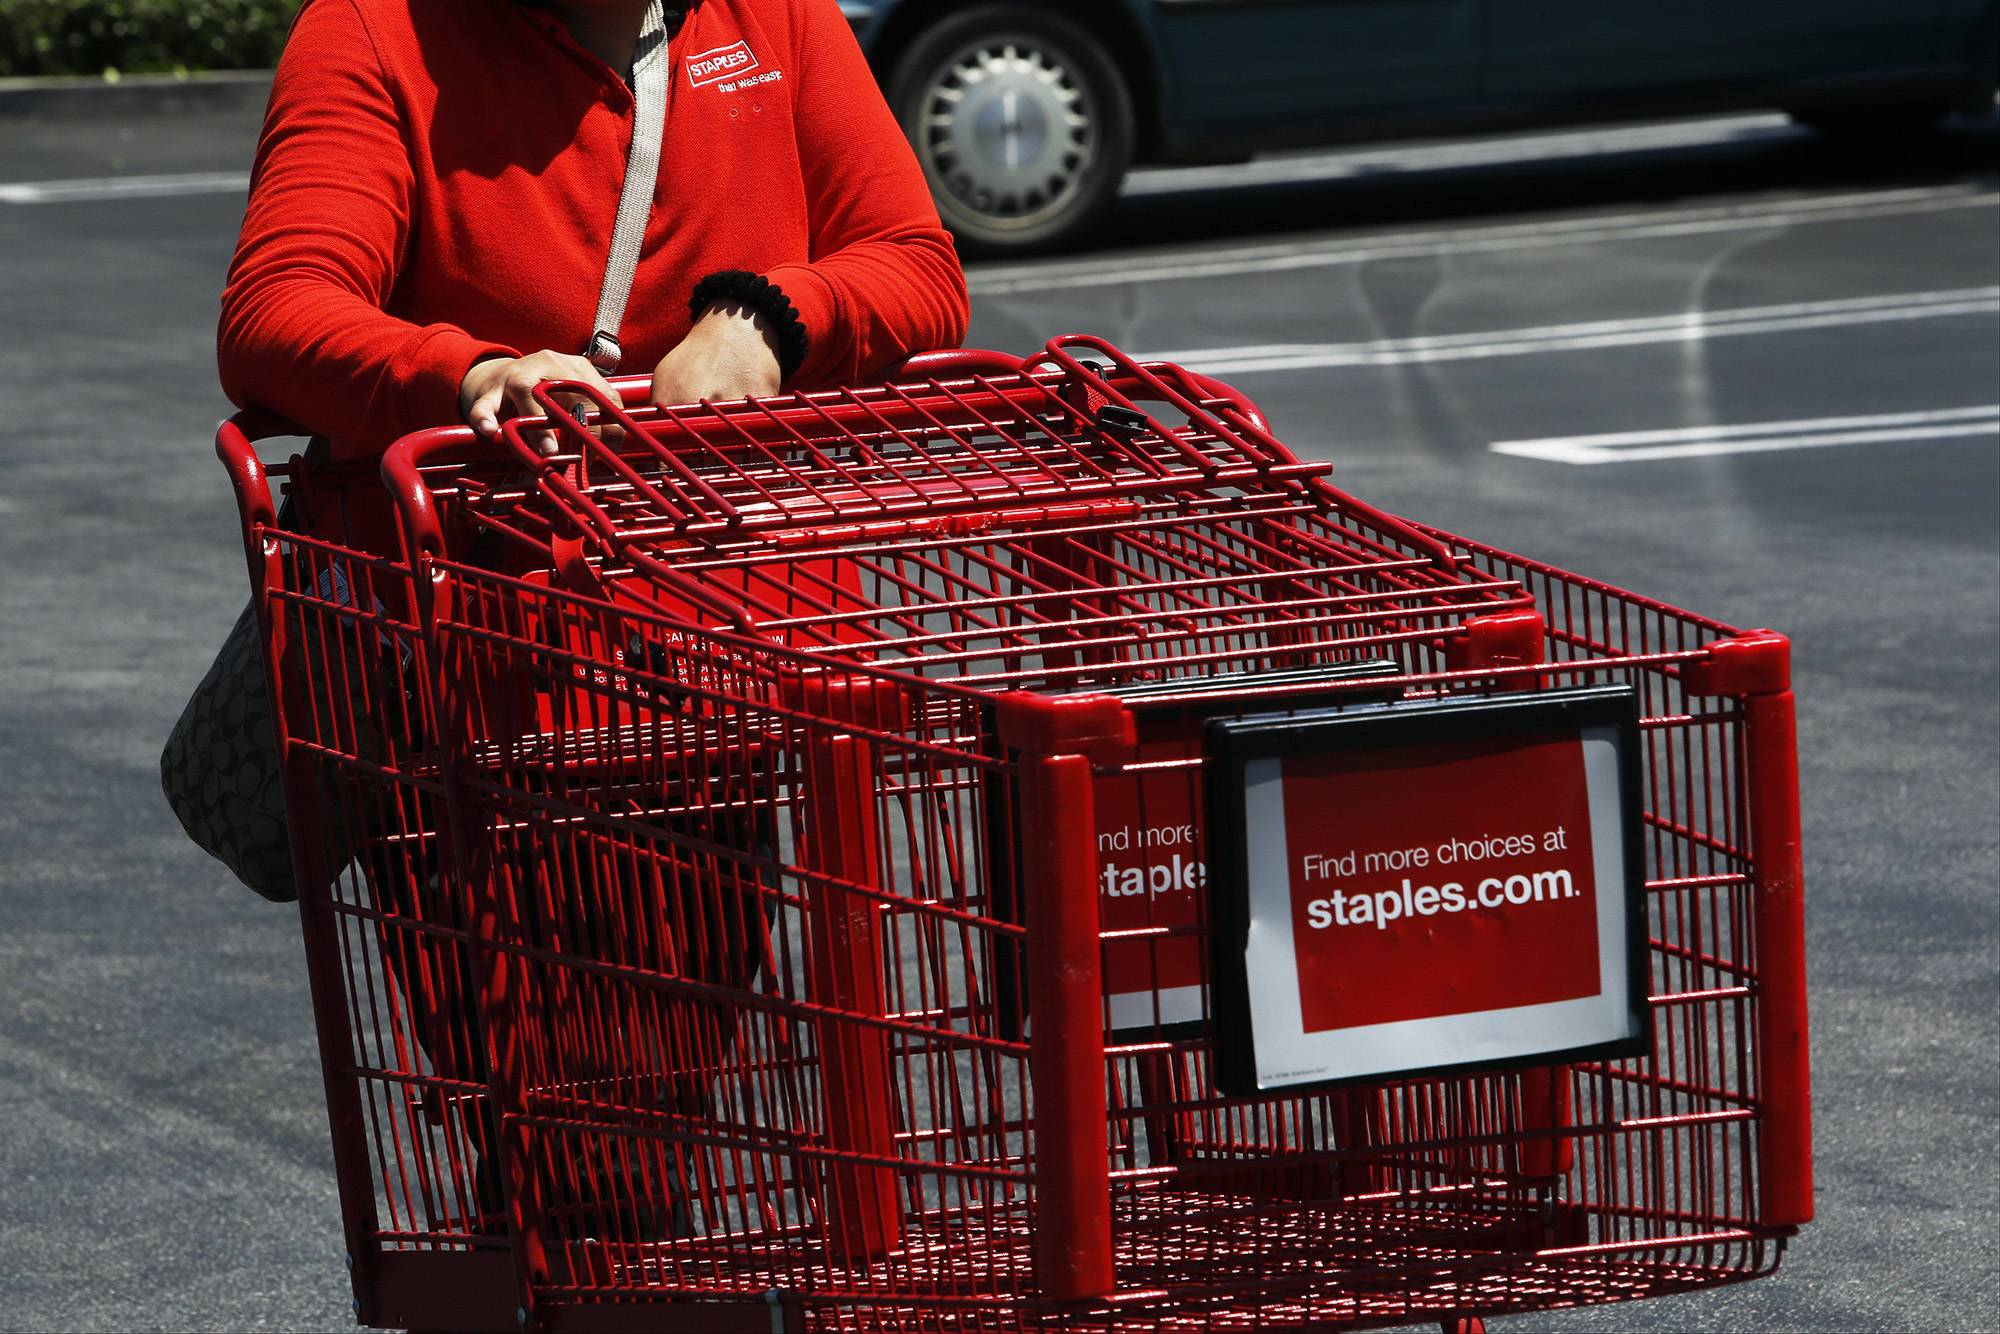 Staples Inc. plans to shut about 140 stores in North America this year as the office-supply retailer responds to online competition that has hurt sales.